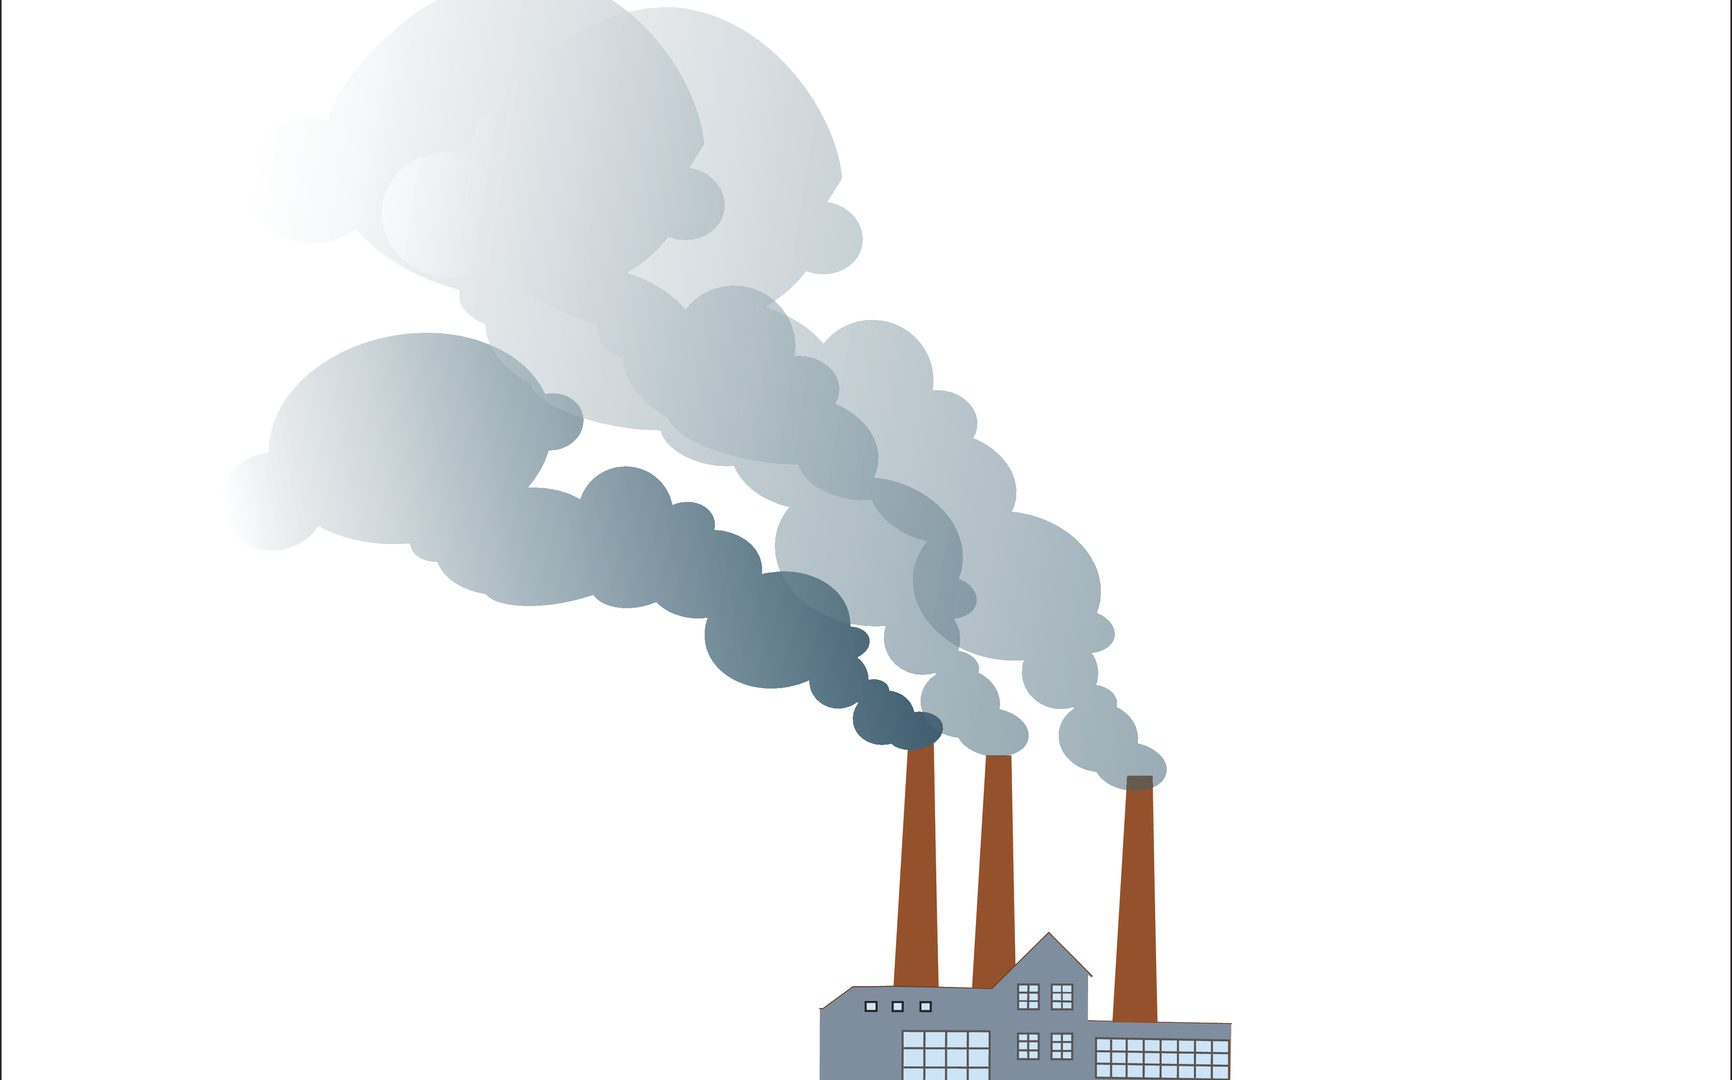 Smoking dirty polluting plant or factory on a neutral background